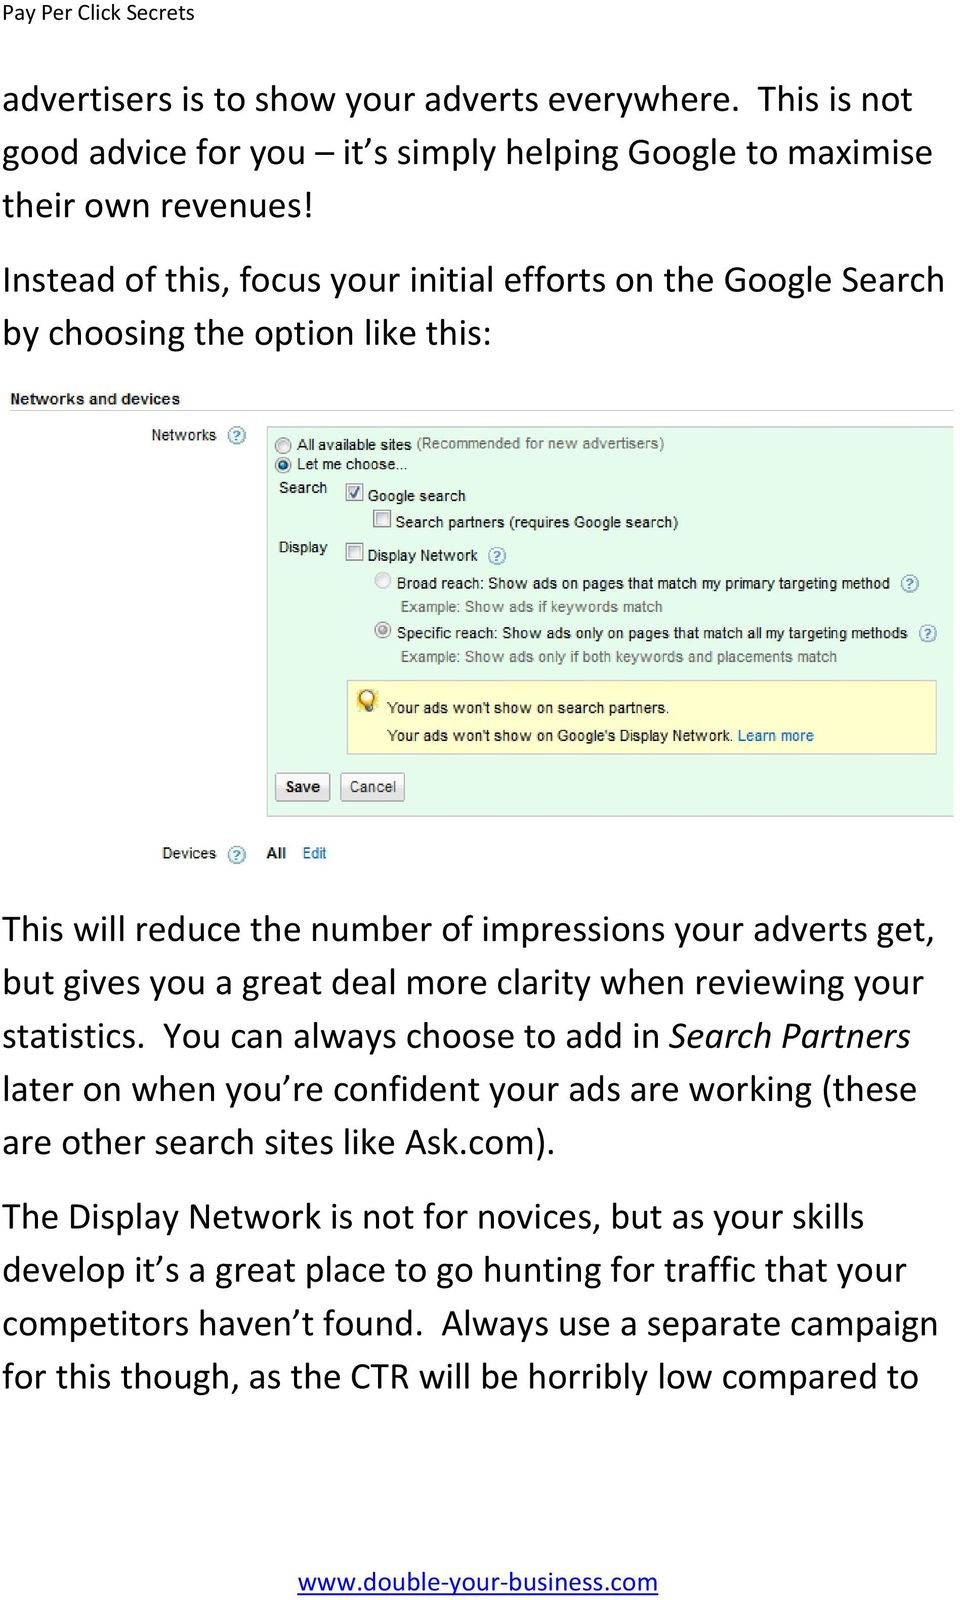 more clarity when reviewing your statistics. You can always choose to add in Search Partners later on when you re confident your ads are working (these are other search sites like Ask.com).